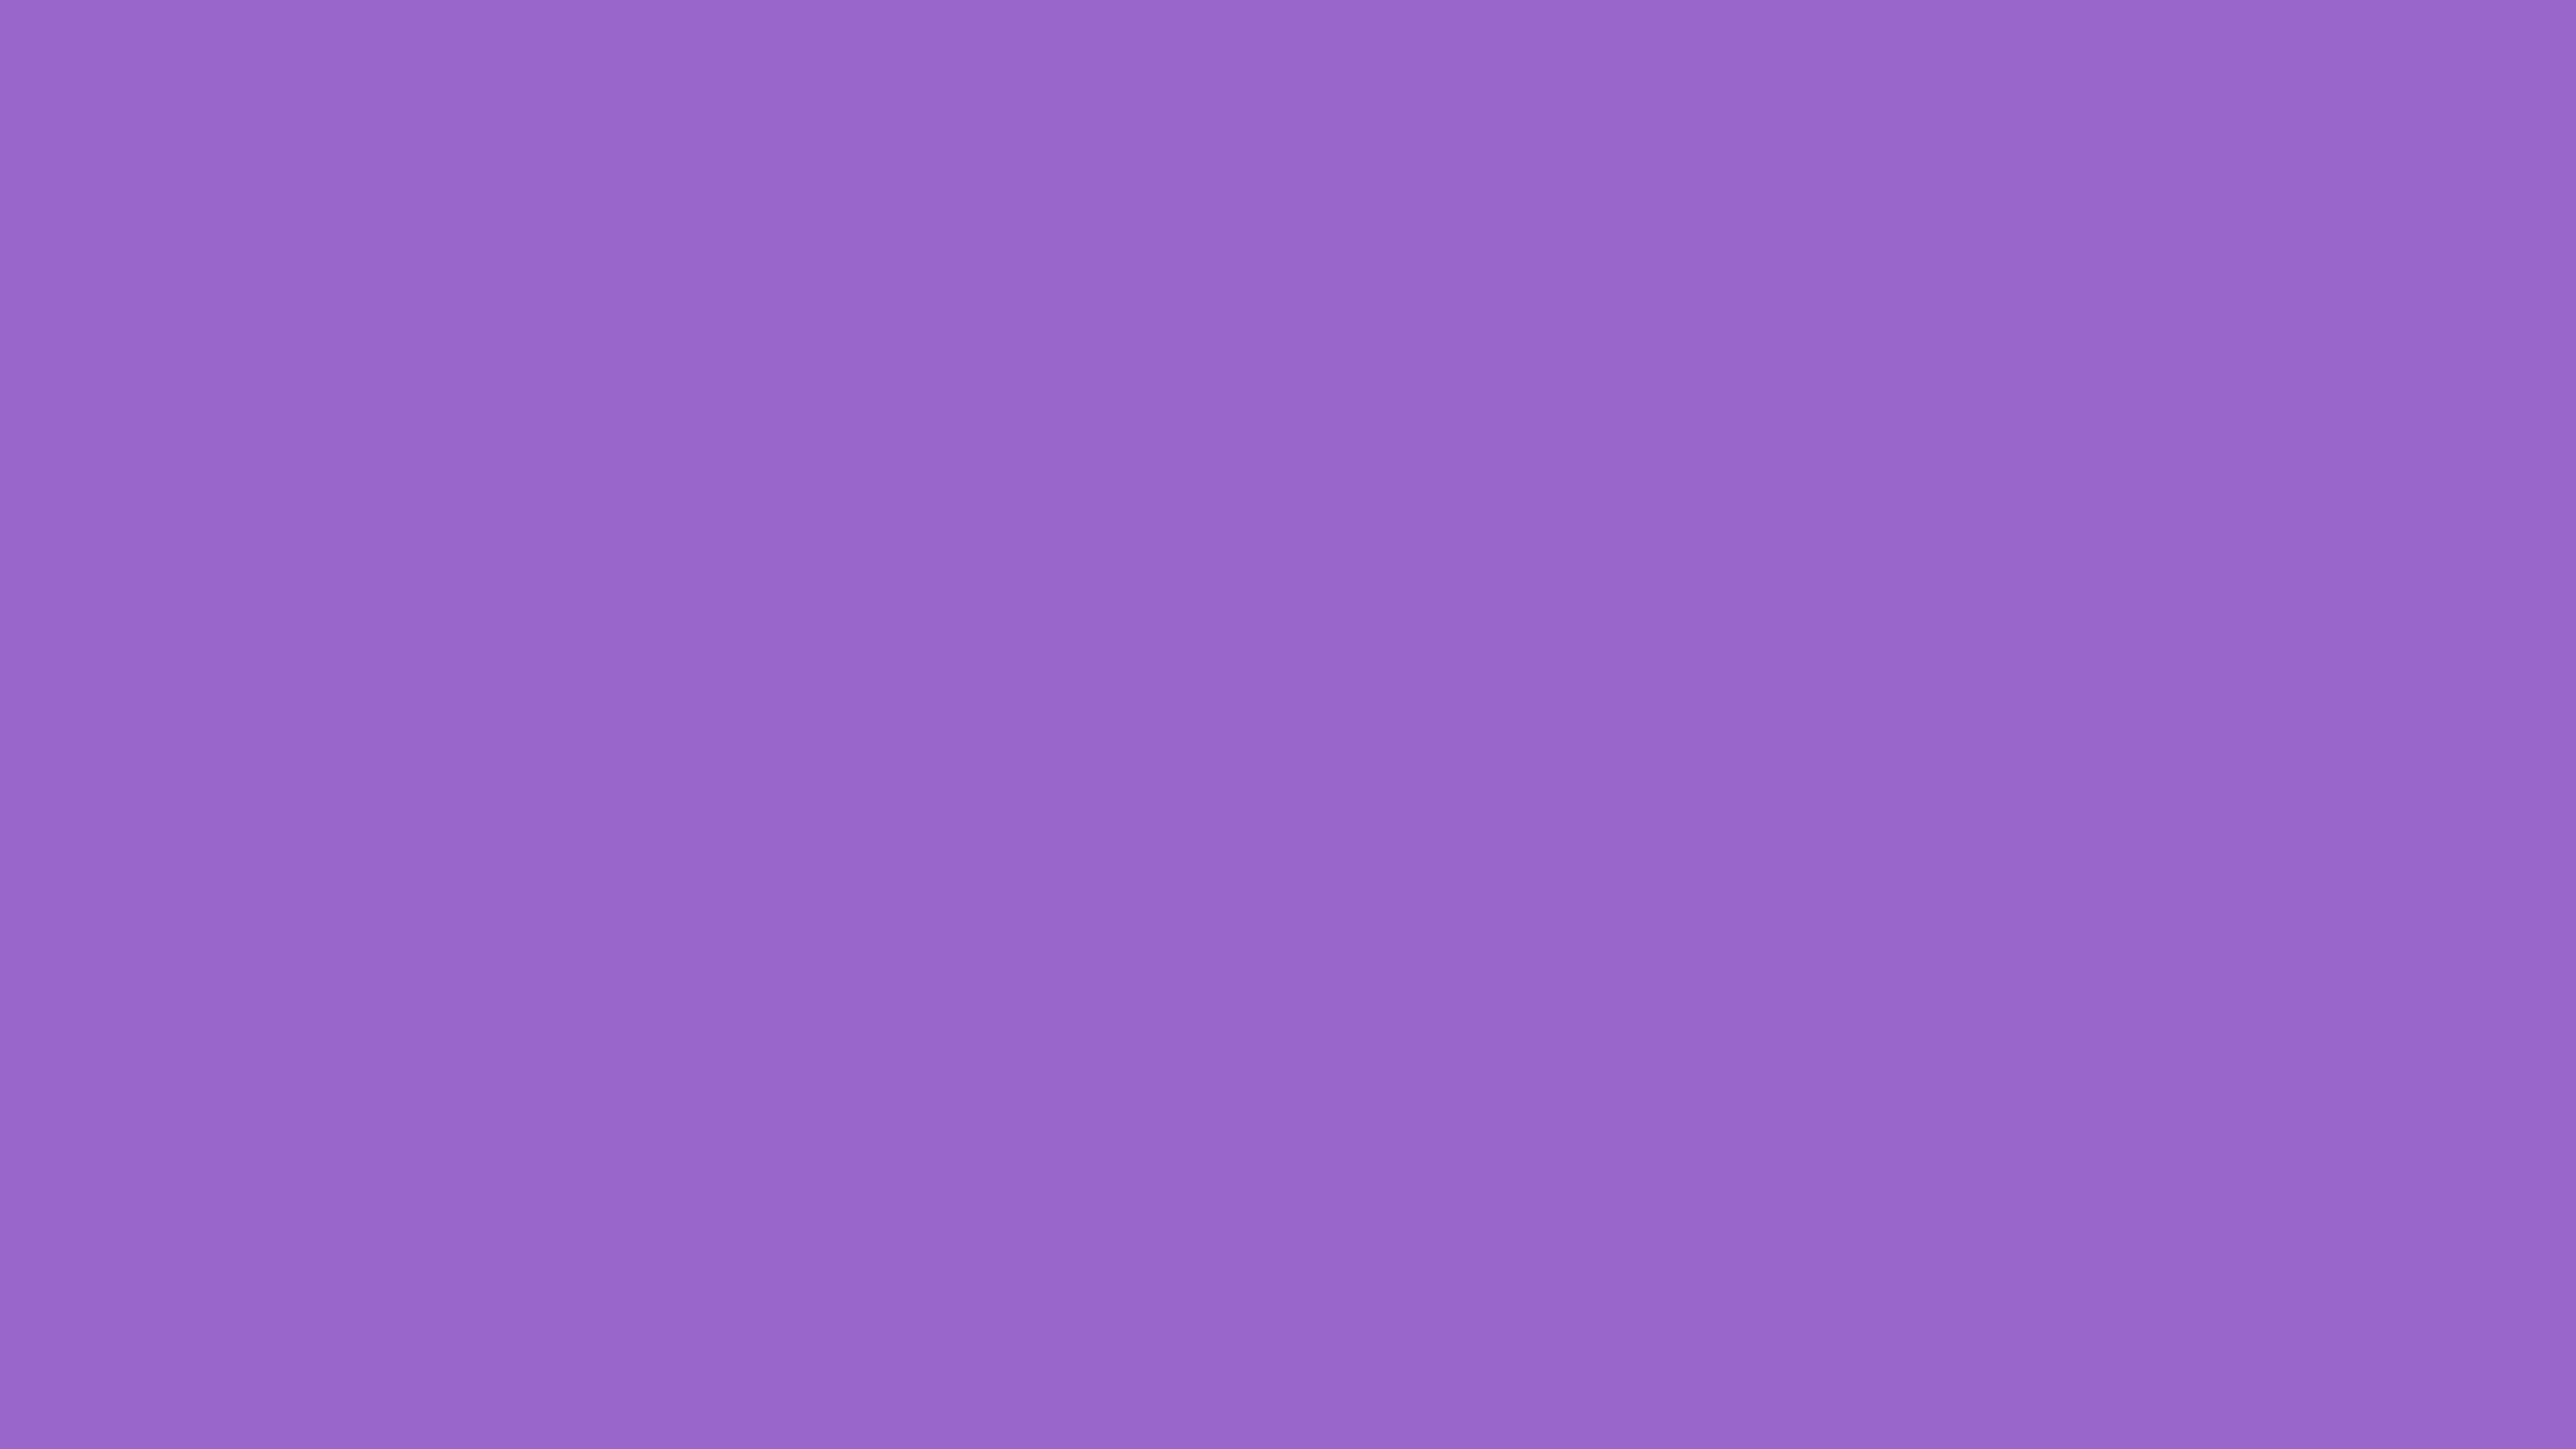 3840x2160 Amethyst Solid Color Background